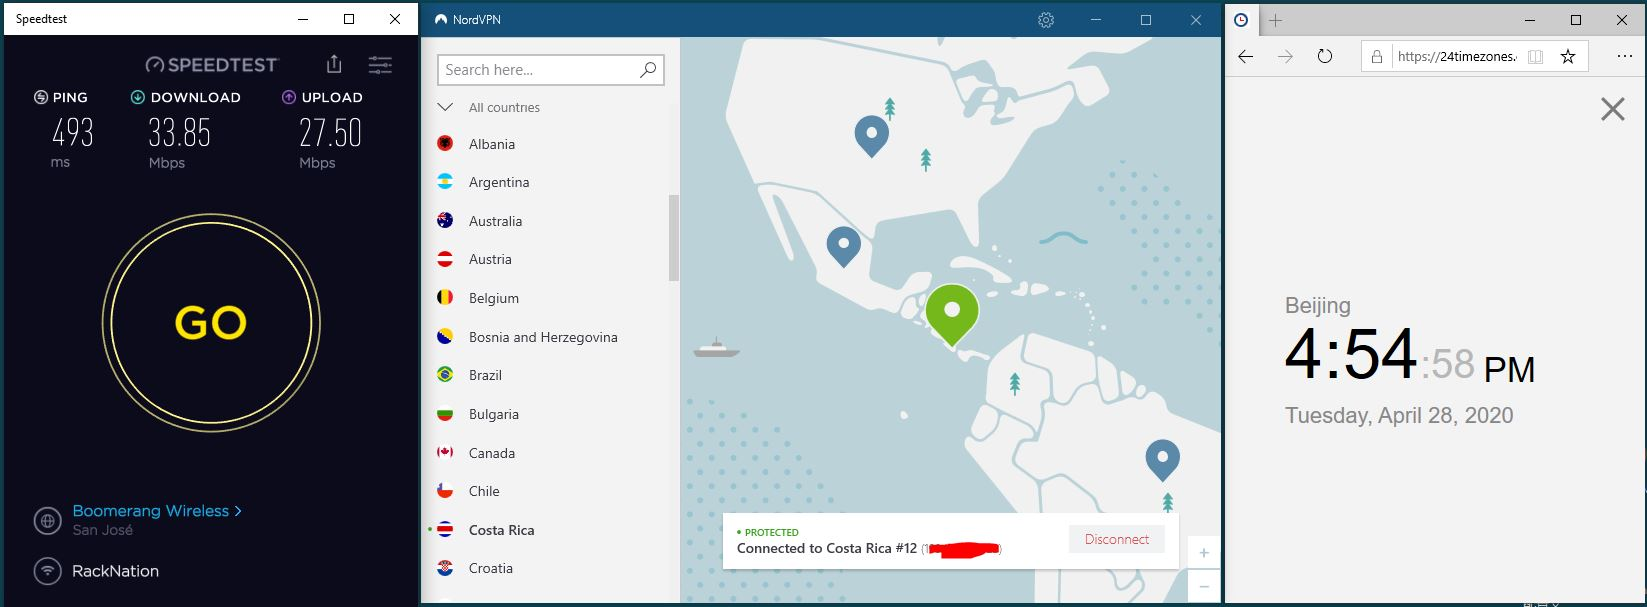 Windows10 NordVPN Costa Rica #12 中国VPN 翻墙 科学上网 SpeedTest测速-20200428